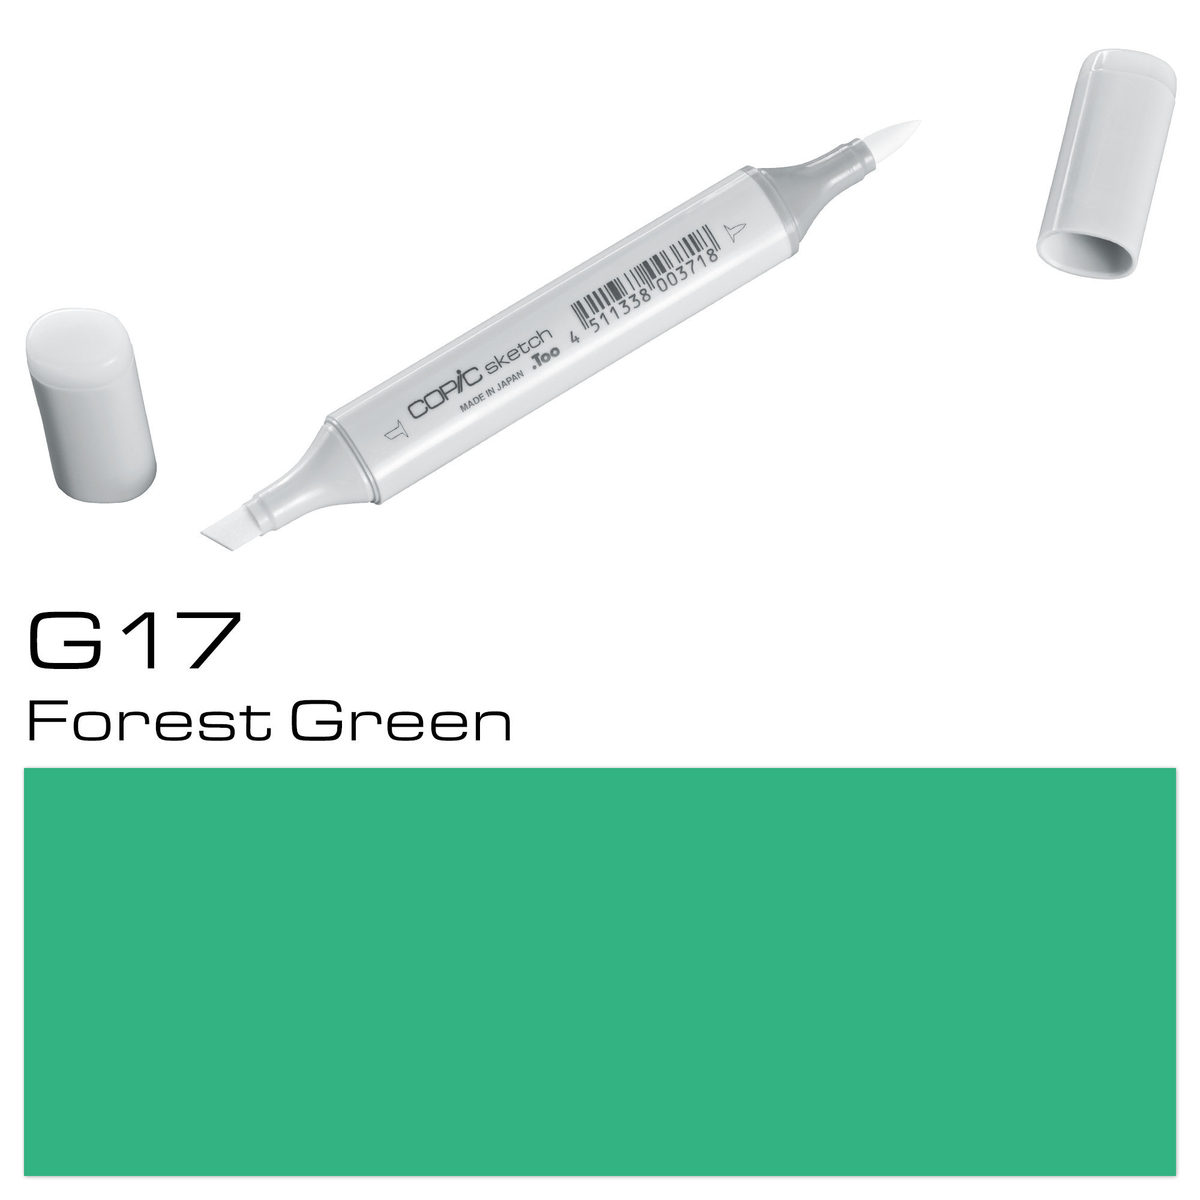 Copic Sketch G 17 forest green